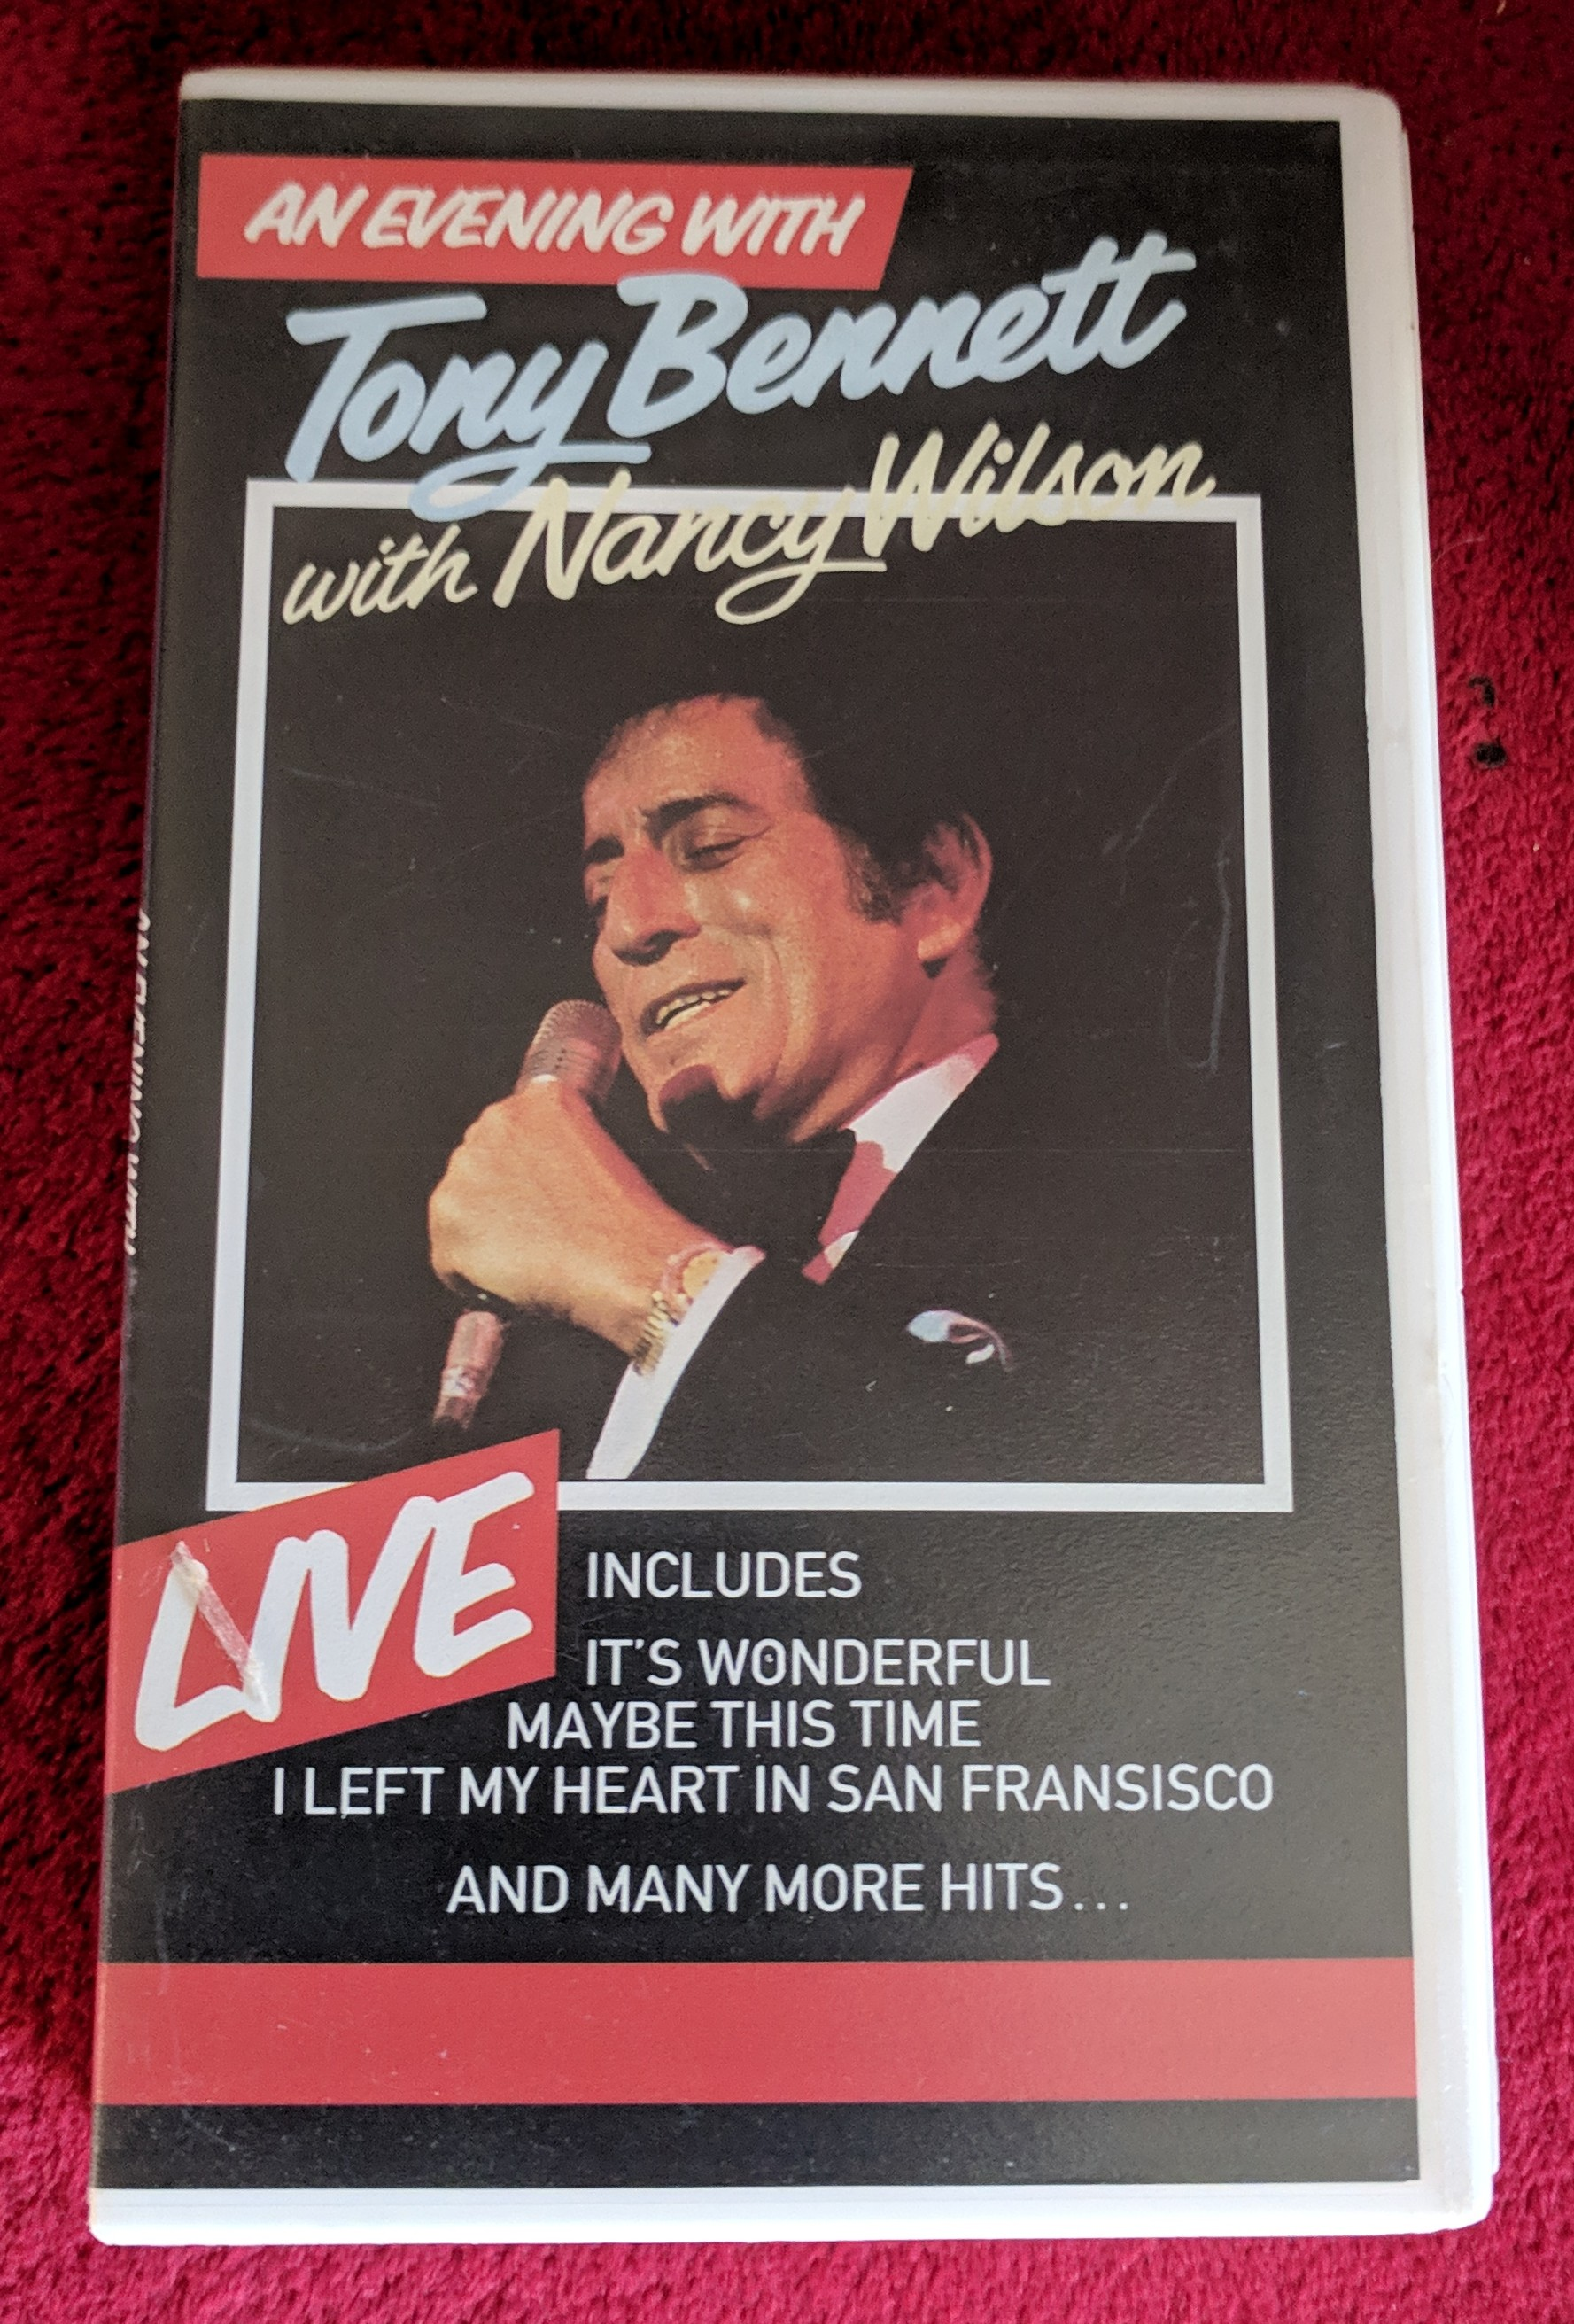 Mastervision - An Evening With Tony Bennett